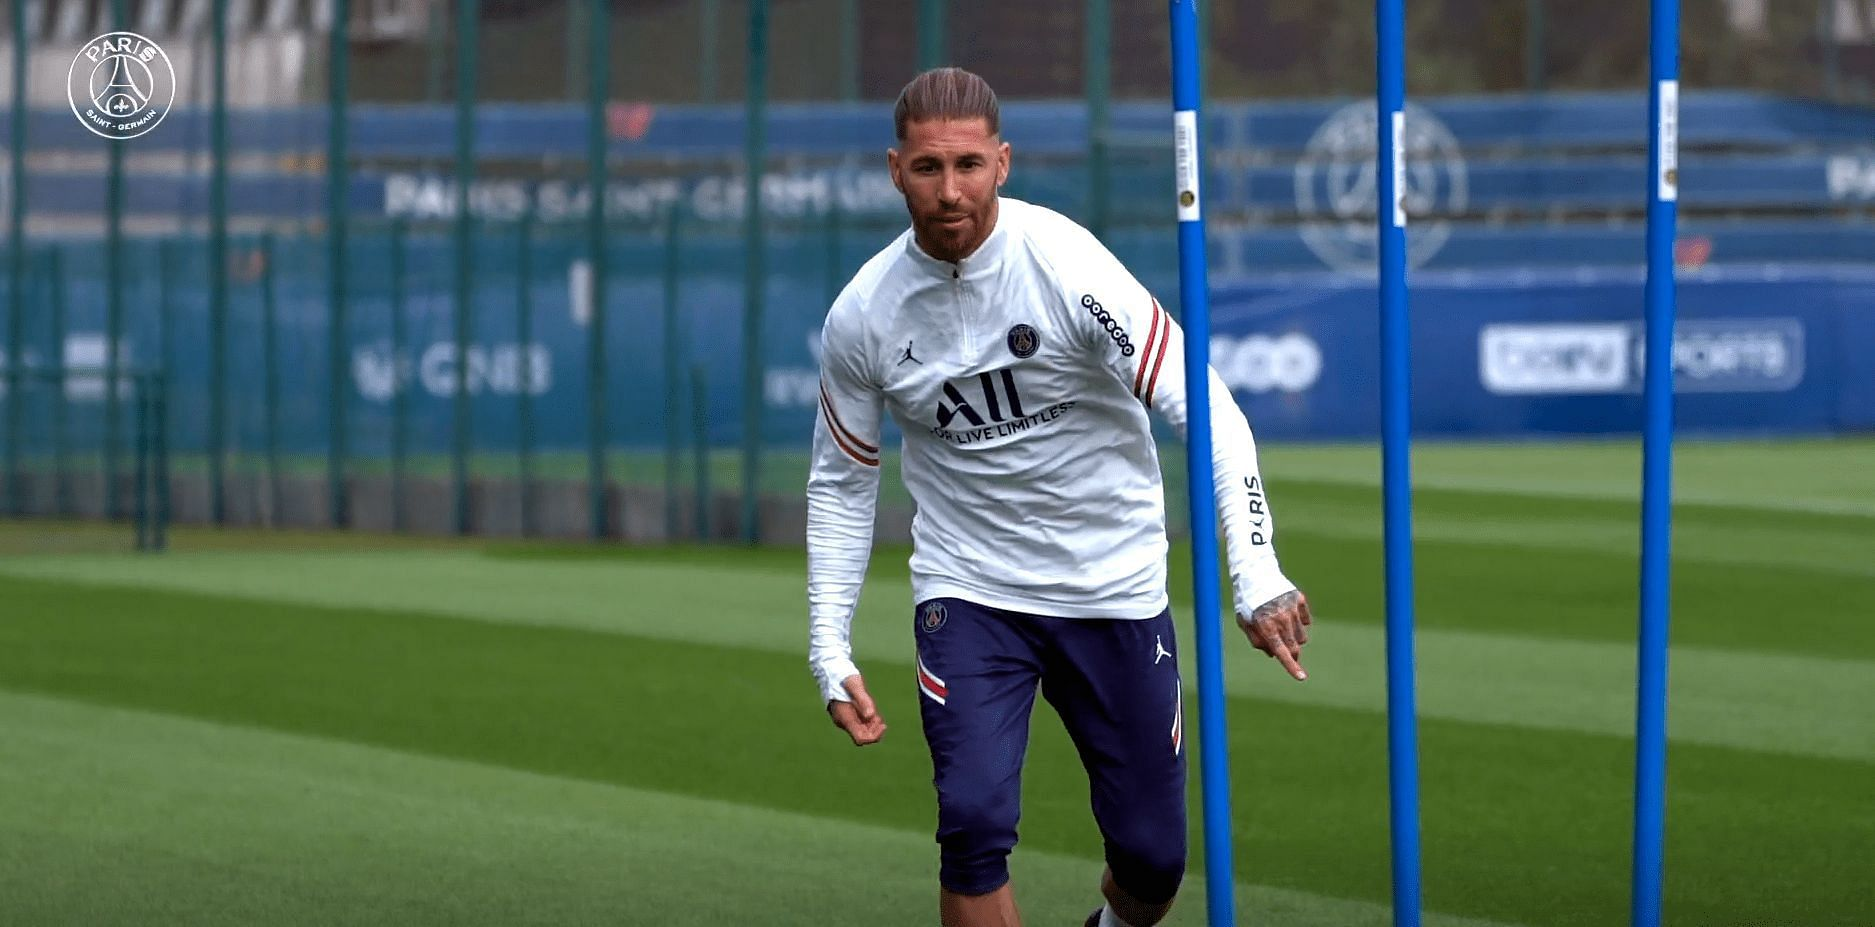 PSG confirm Sergio Ramos will not make debut against Angers, return delayed